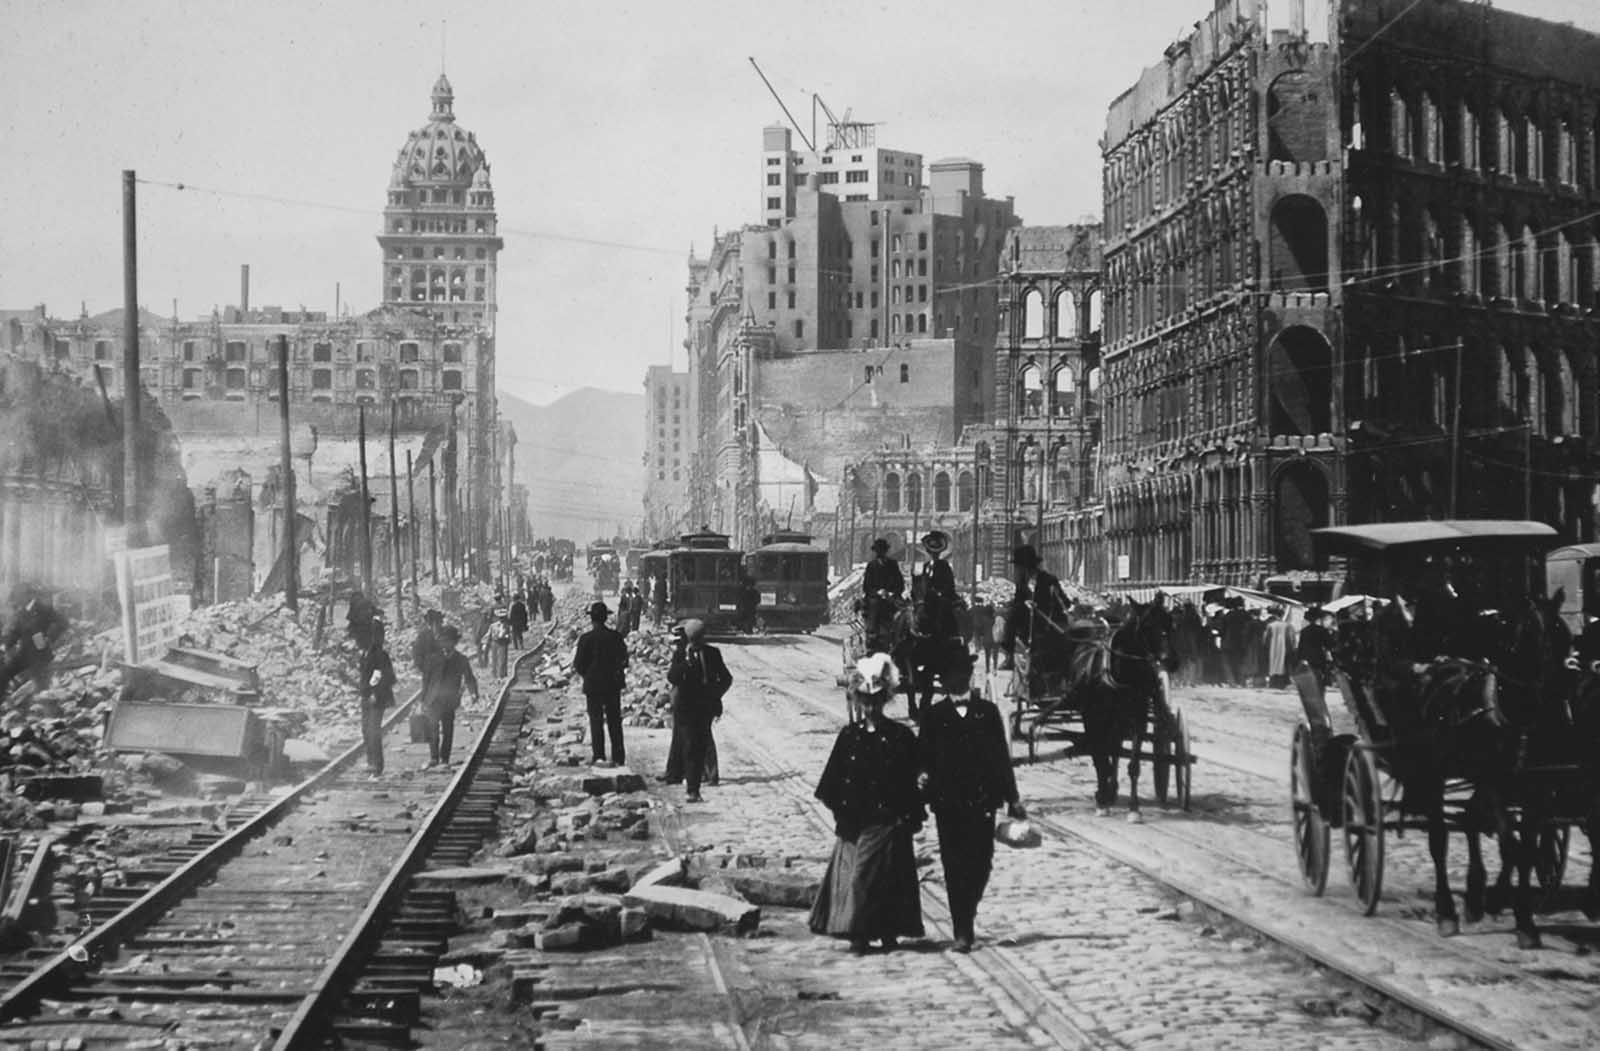 Market Street, looking west toward the Twin Peaks, from Battery Street. Both sides of Market Street lined with ruined buildings from Battery to Powell.